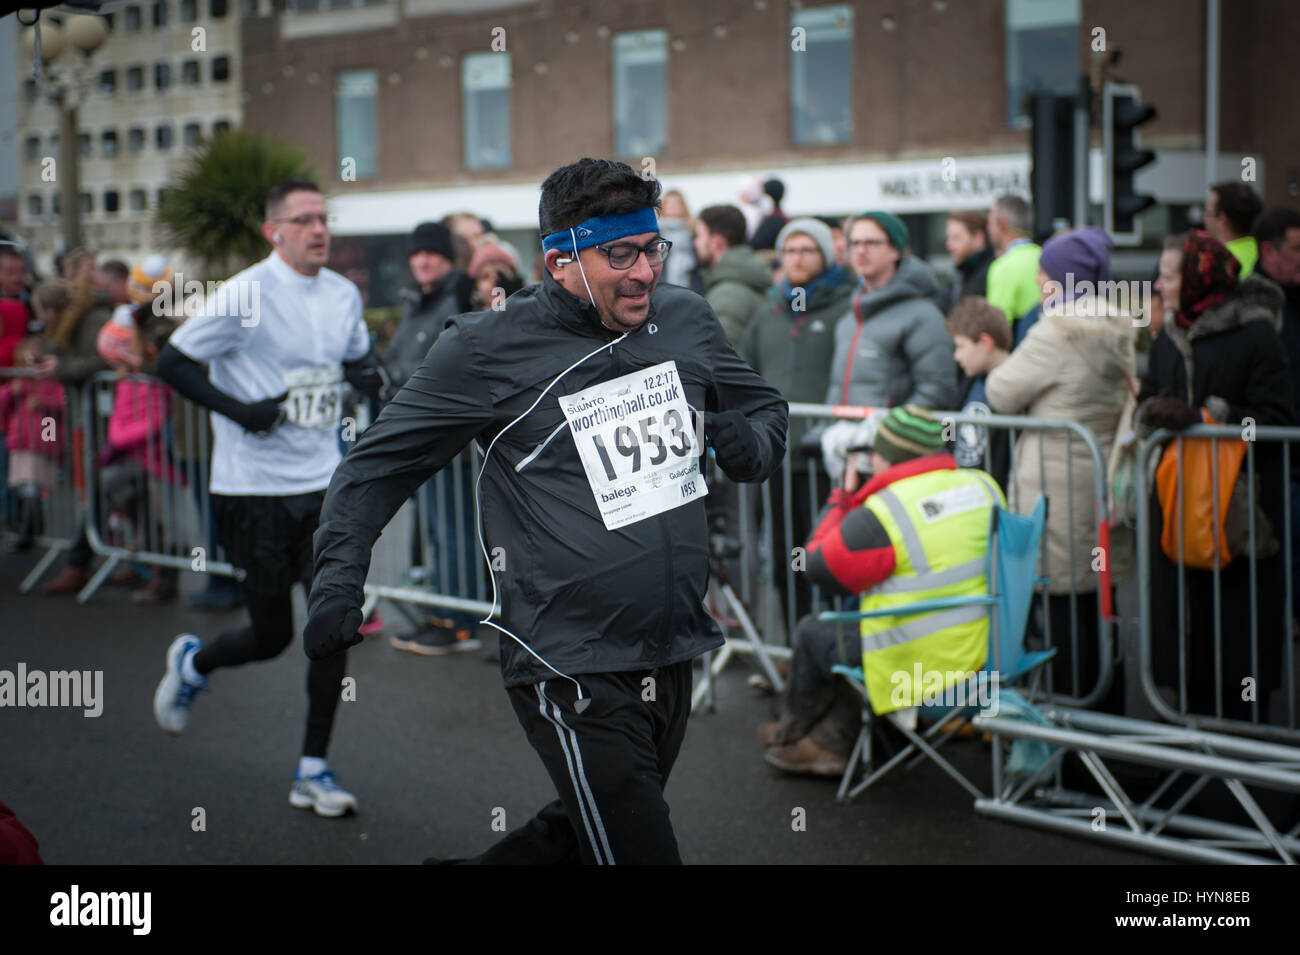 Tired and exhausted runners cross the finish line during the Worthing Half Marathon in Worthing, West Sussex, UK. - Stock Image